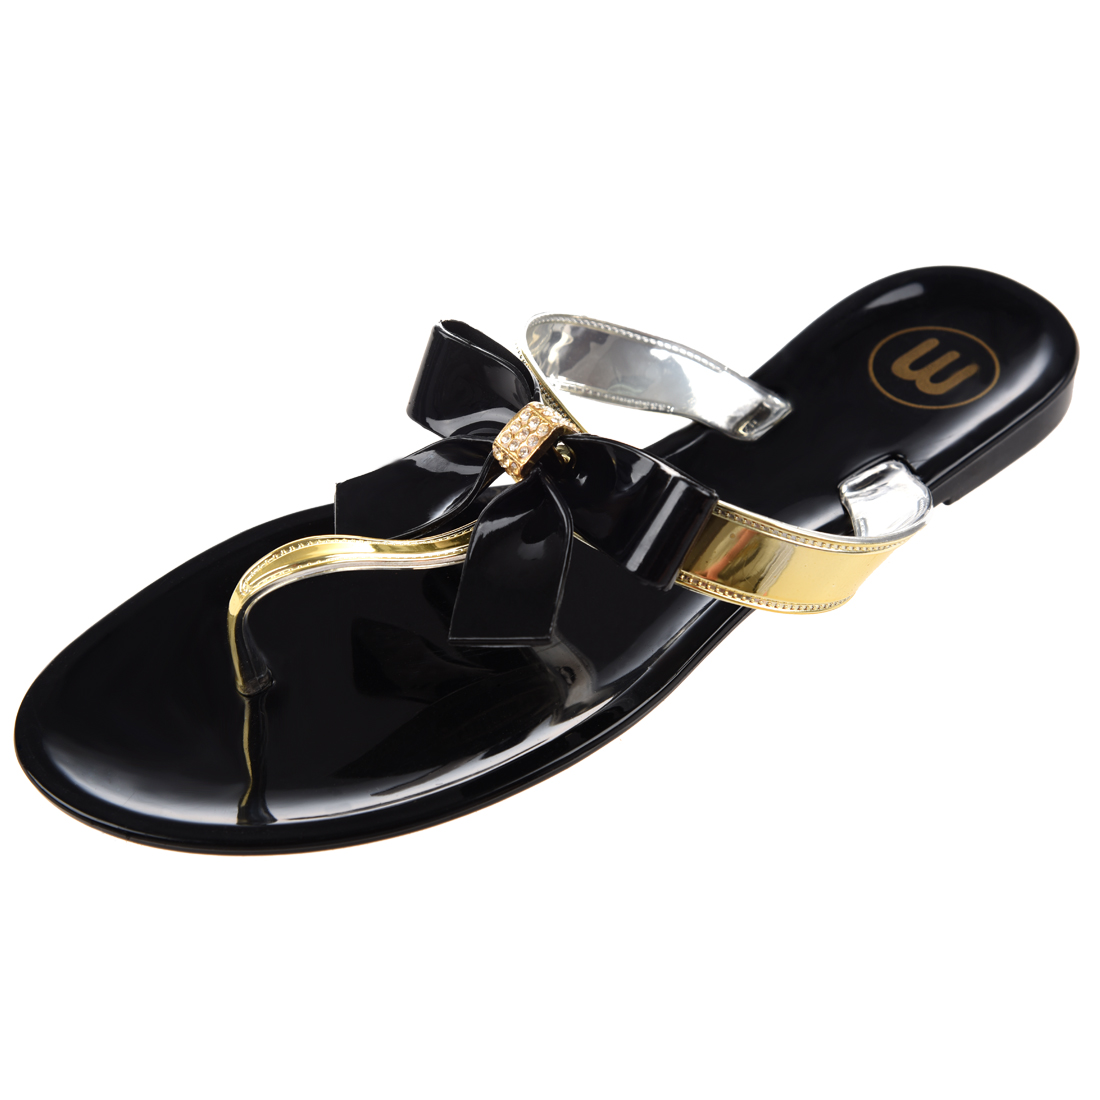 23c72a4086b1fb Ladies Toe Bow Diamante Summer Thong Sandals Black Uk 6 EU 39 US 8 ...